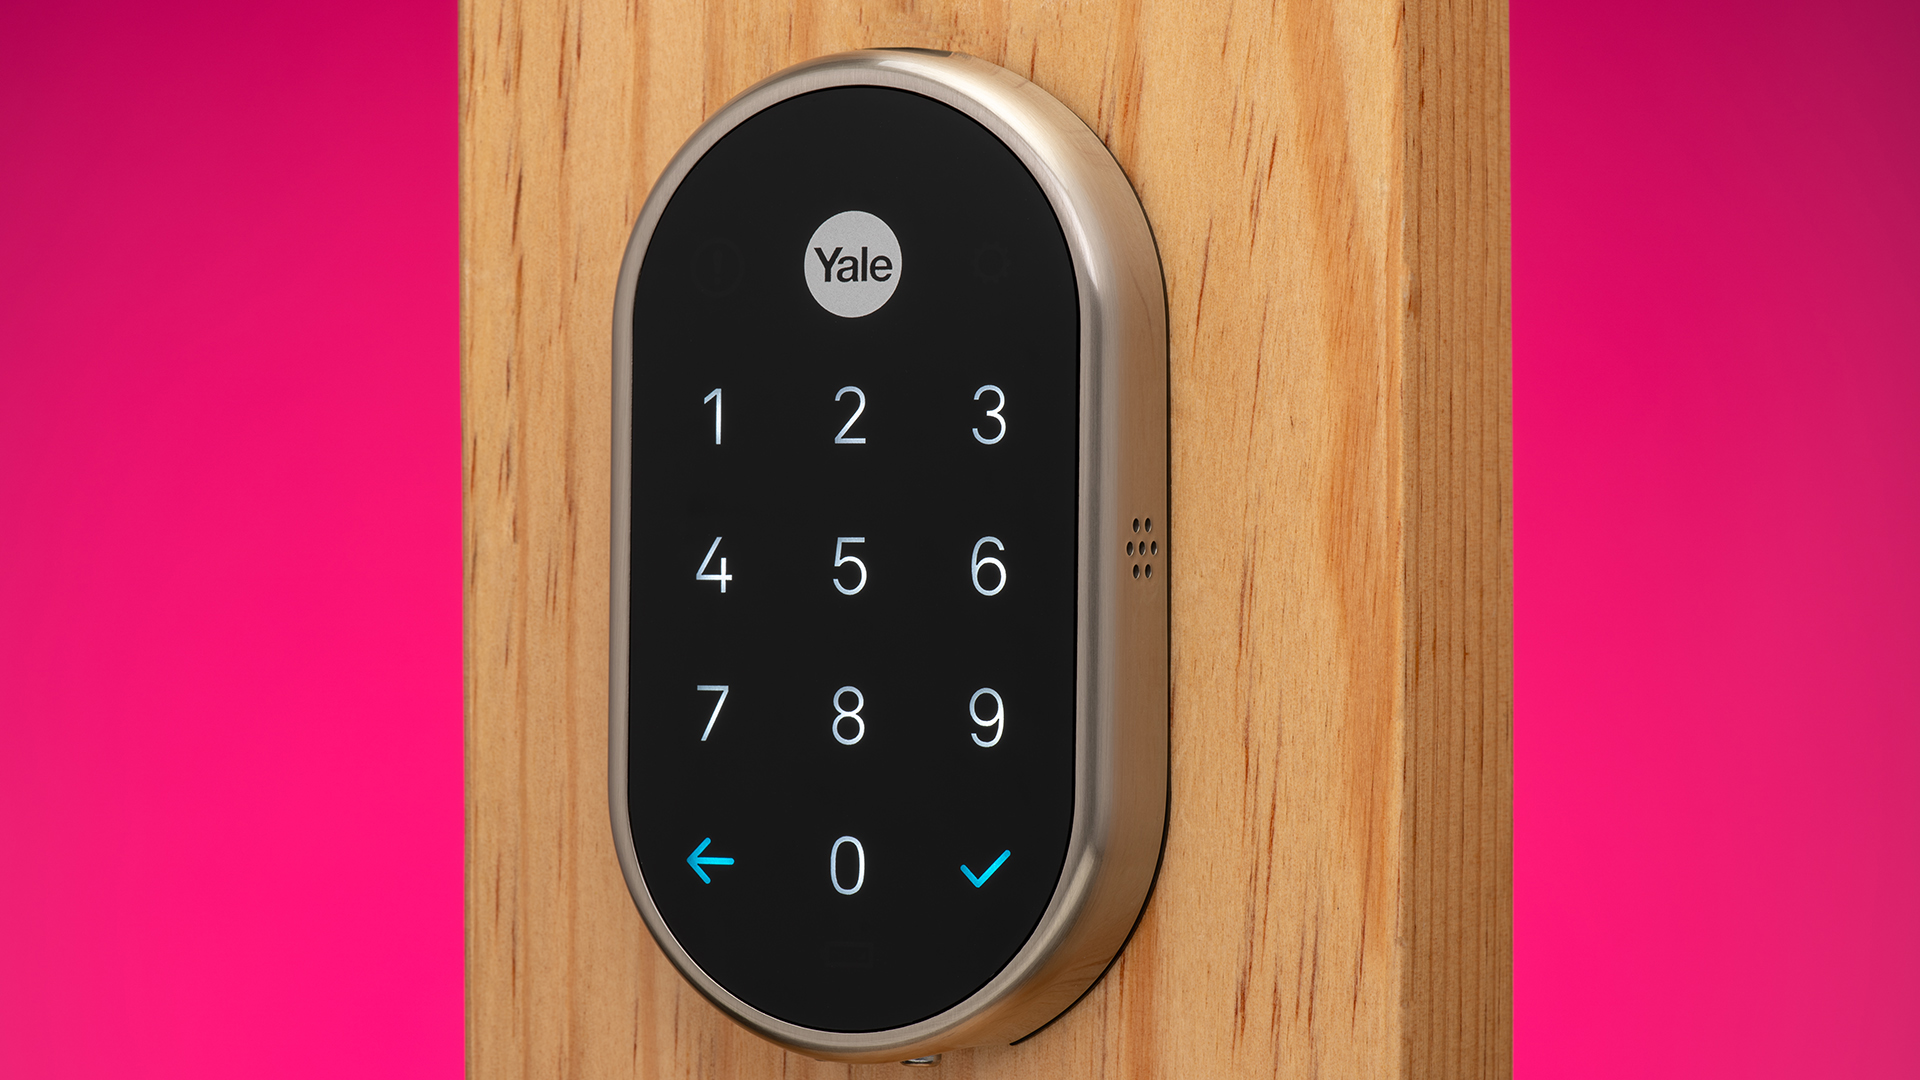 The Nest x Yale smart lock, a tamper-proof, key-free deadbolt that connects to the Nest app.